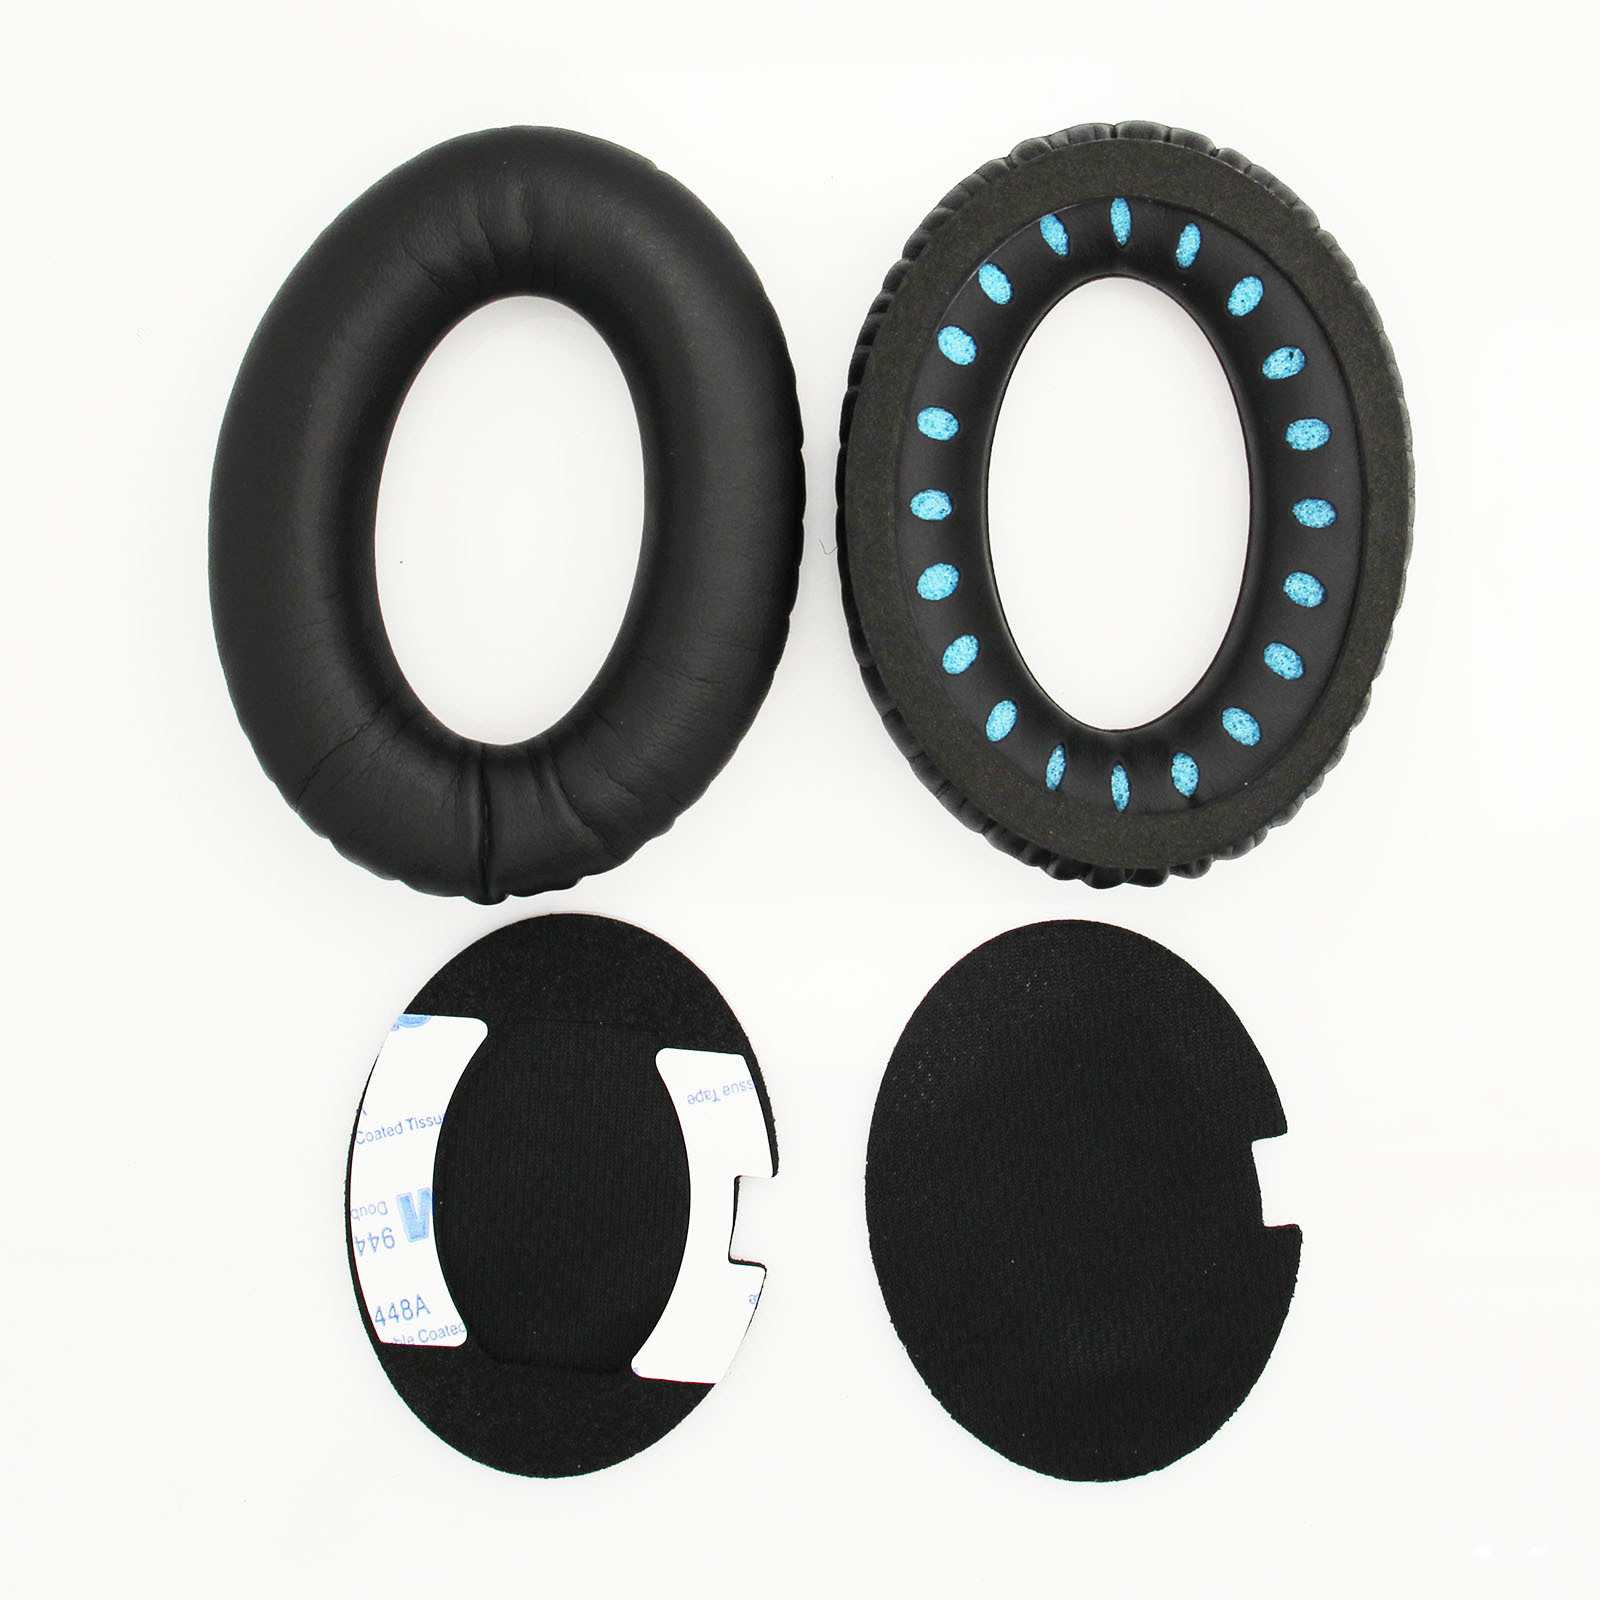 Replacement Earpads Ear Pads Cushions For QC2 QC15 headphones